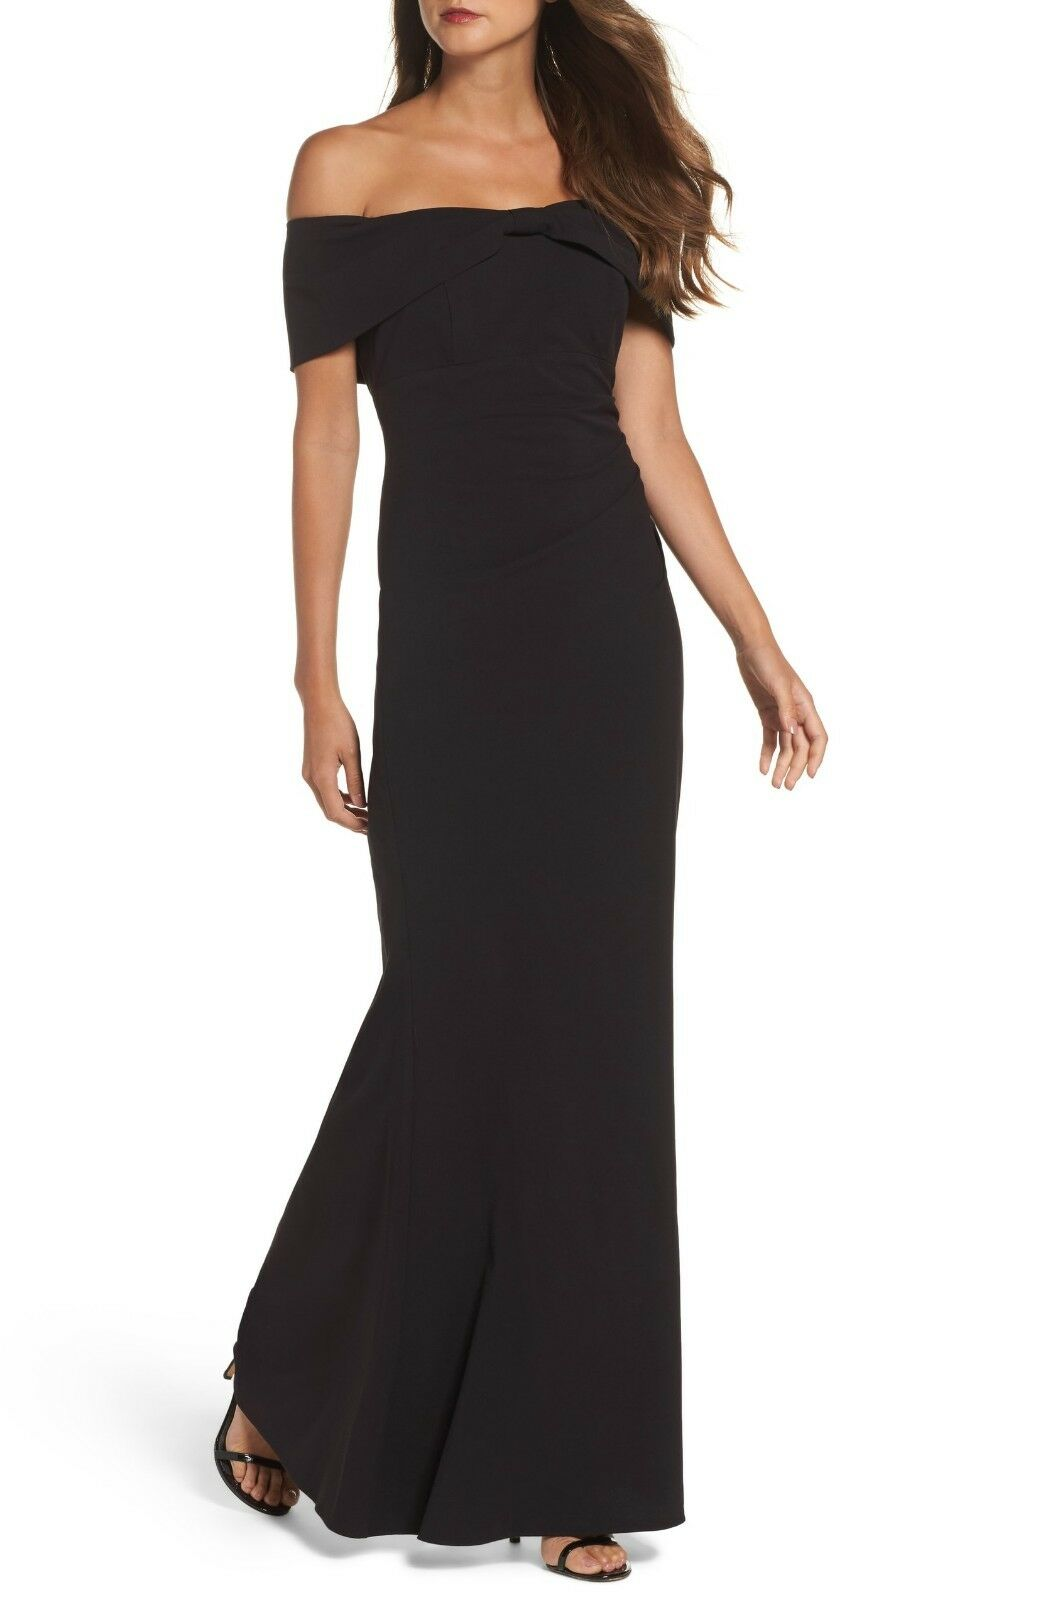 Eliza J Knot Front Off the Shoulder Gown Größe 10P, schwarz, Retail ,  IL1008